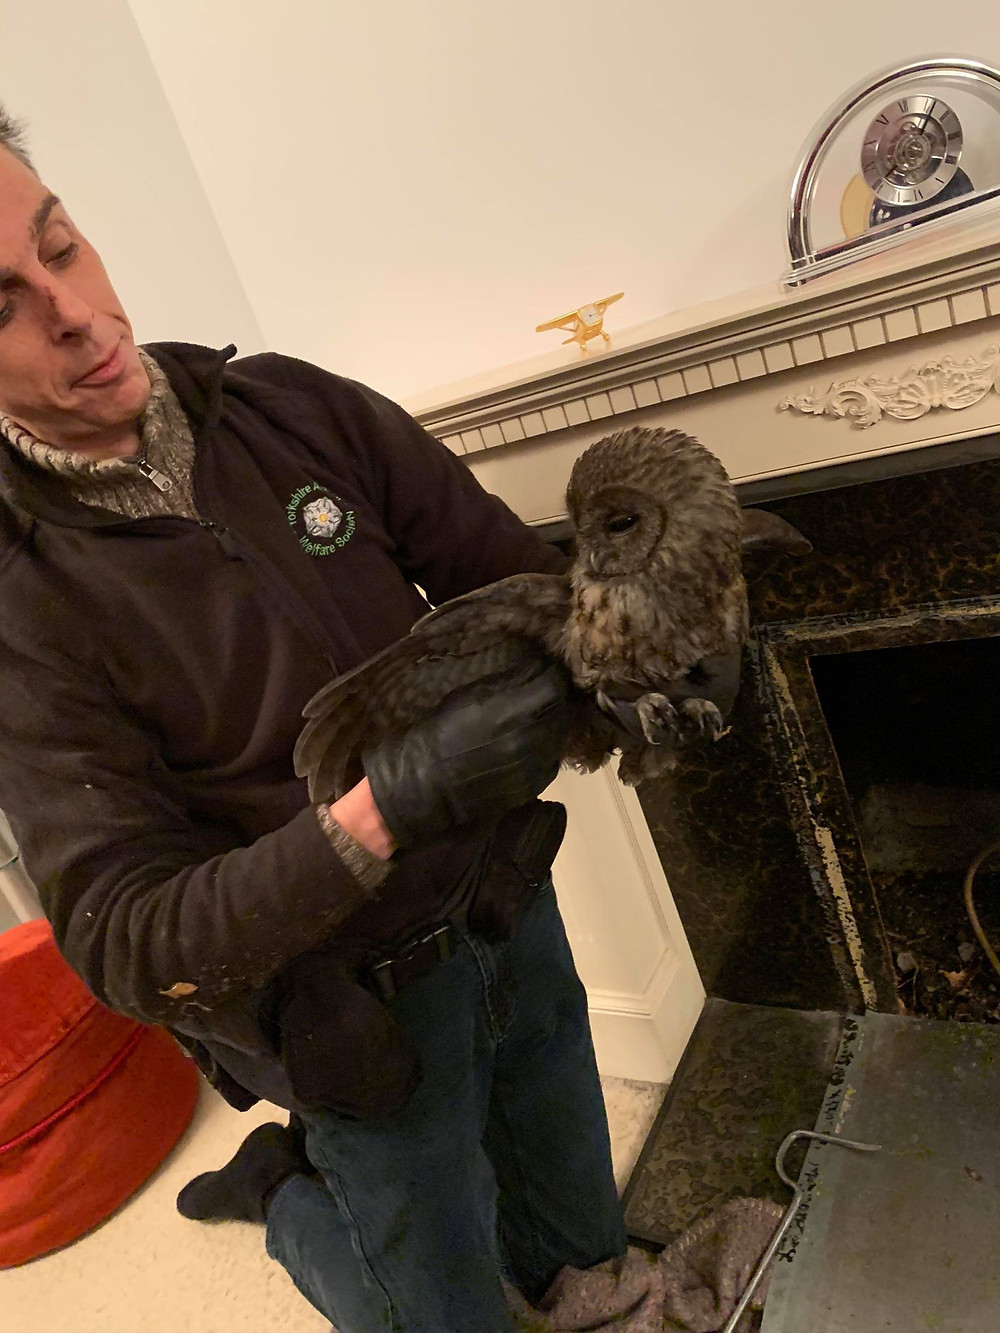 Tawny owl rescued from a chimney jan 2019